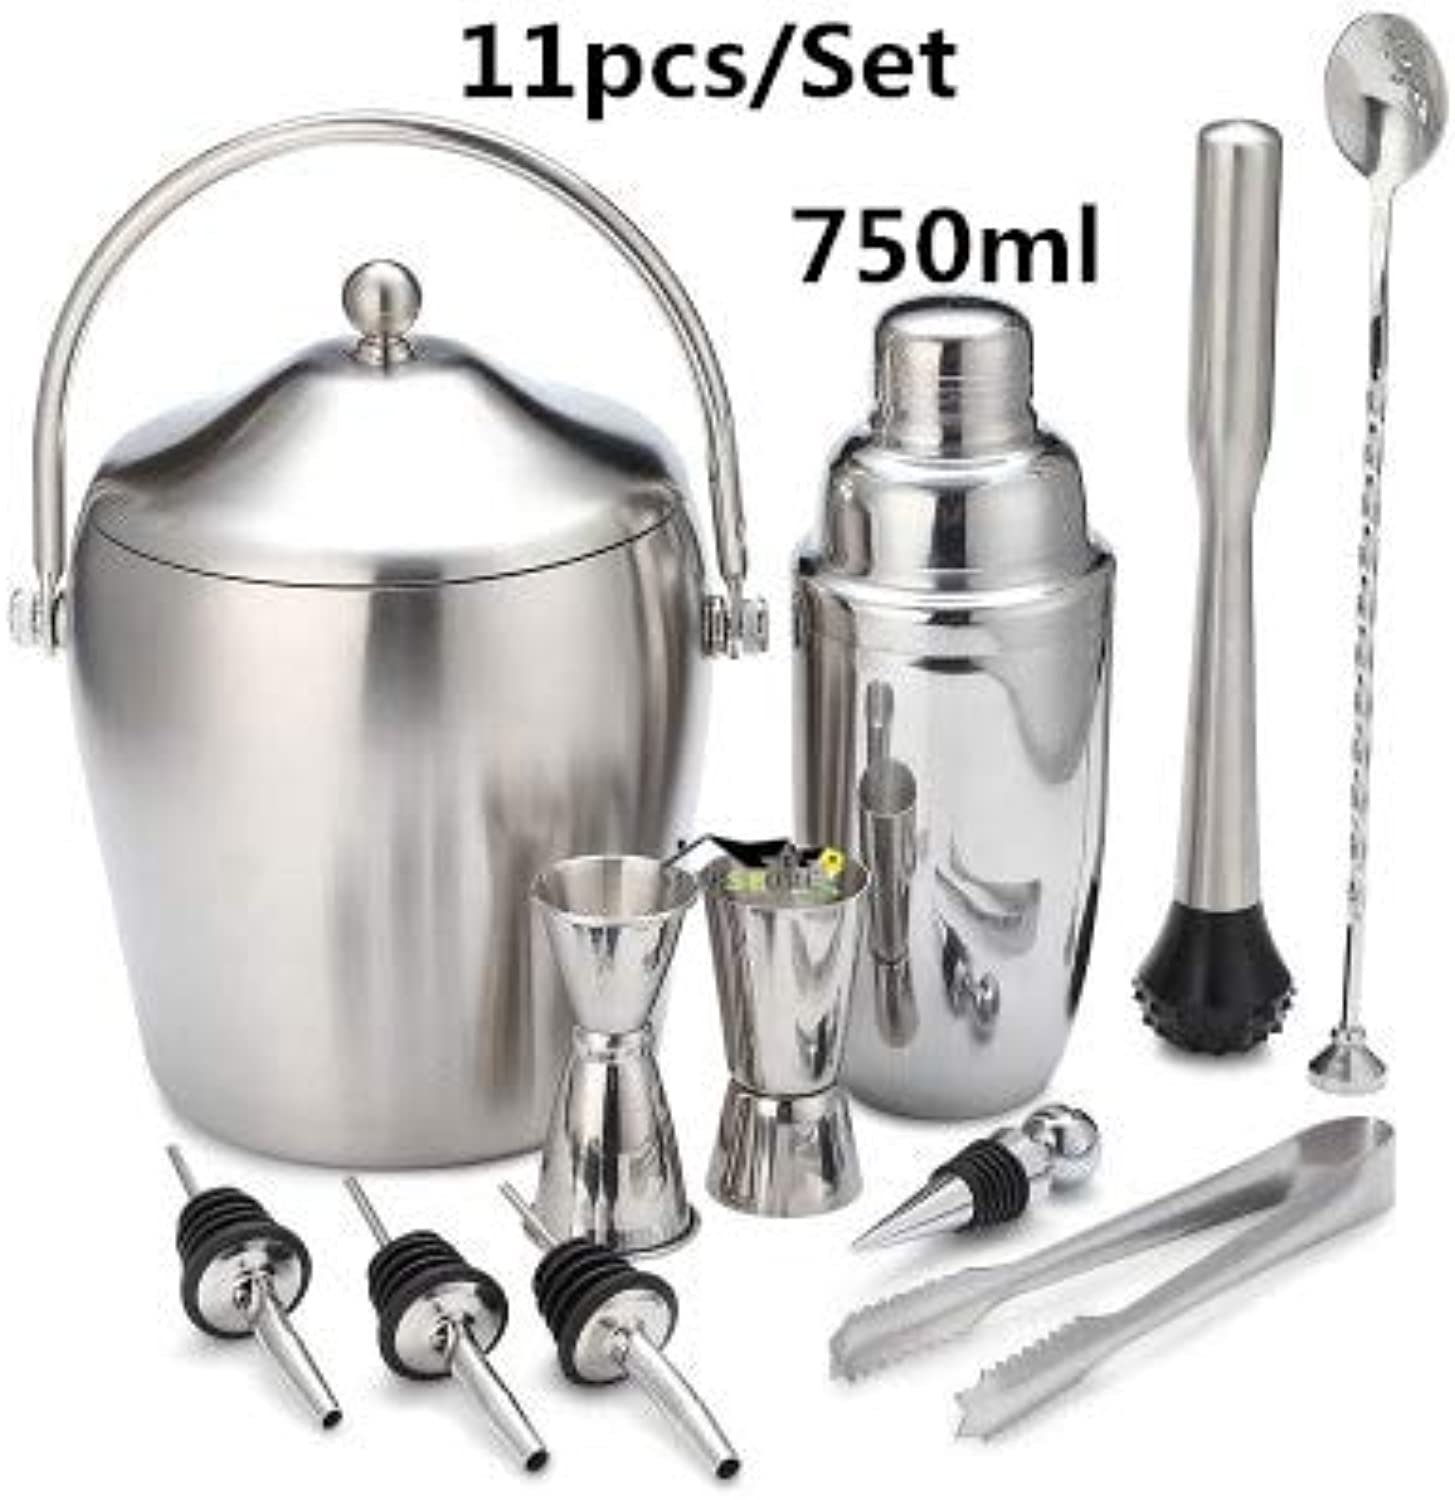 Bar Sets Stainless Steel Lounge Cup Boston Cup Shaker Cocktail Shaker Bar Tools   18